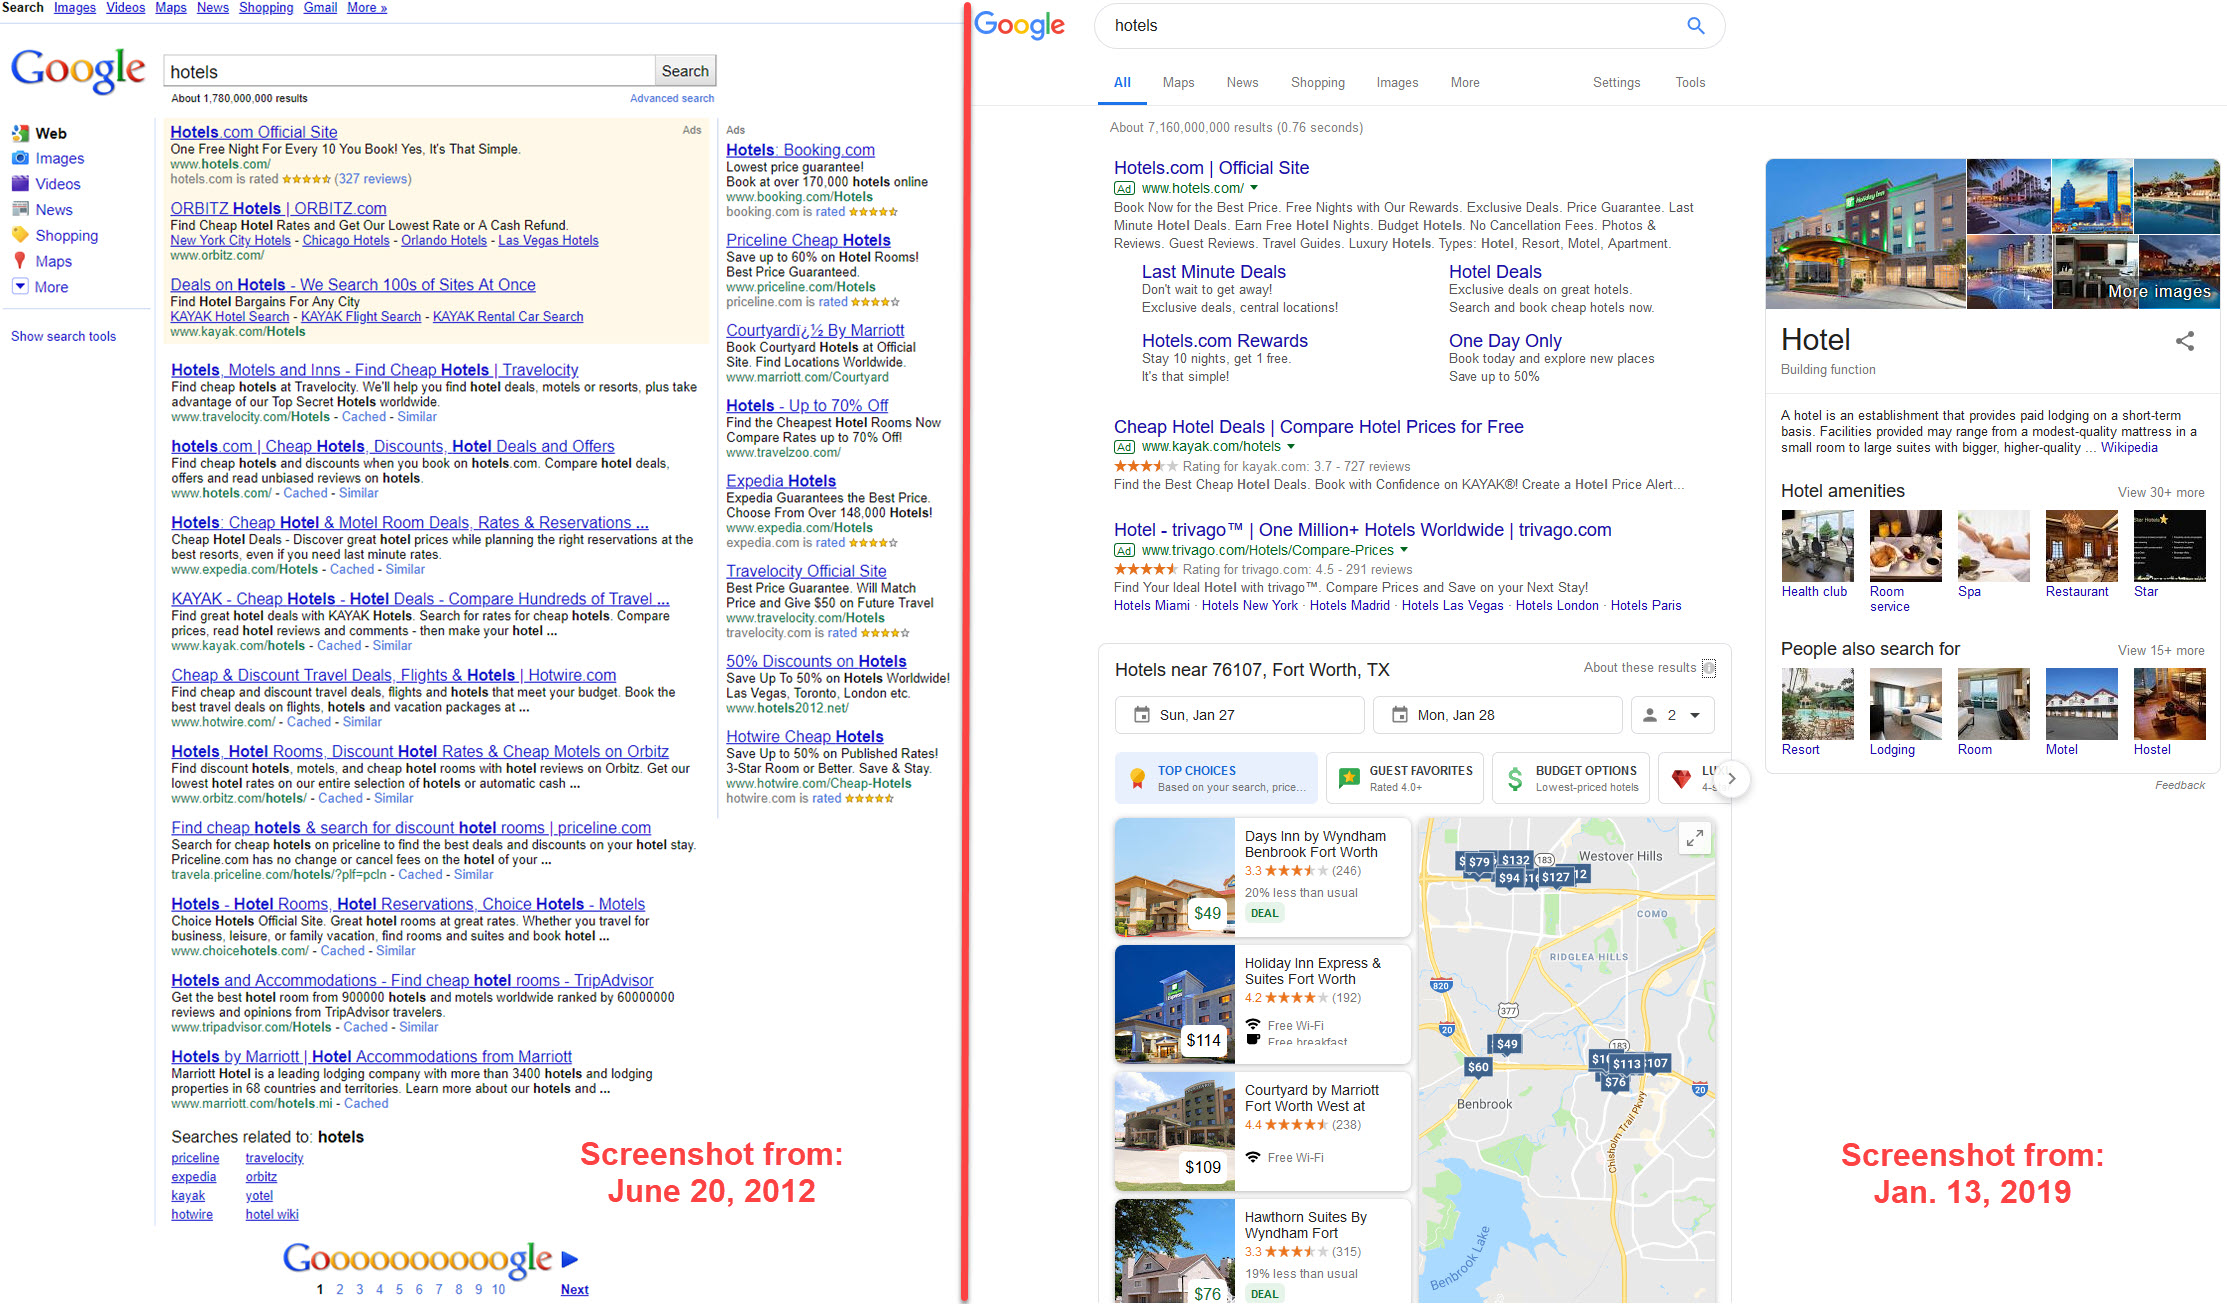 Google Search Results for 'hotels' (2012 vs 2019)